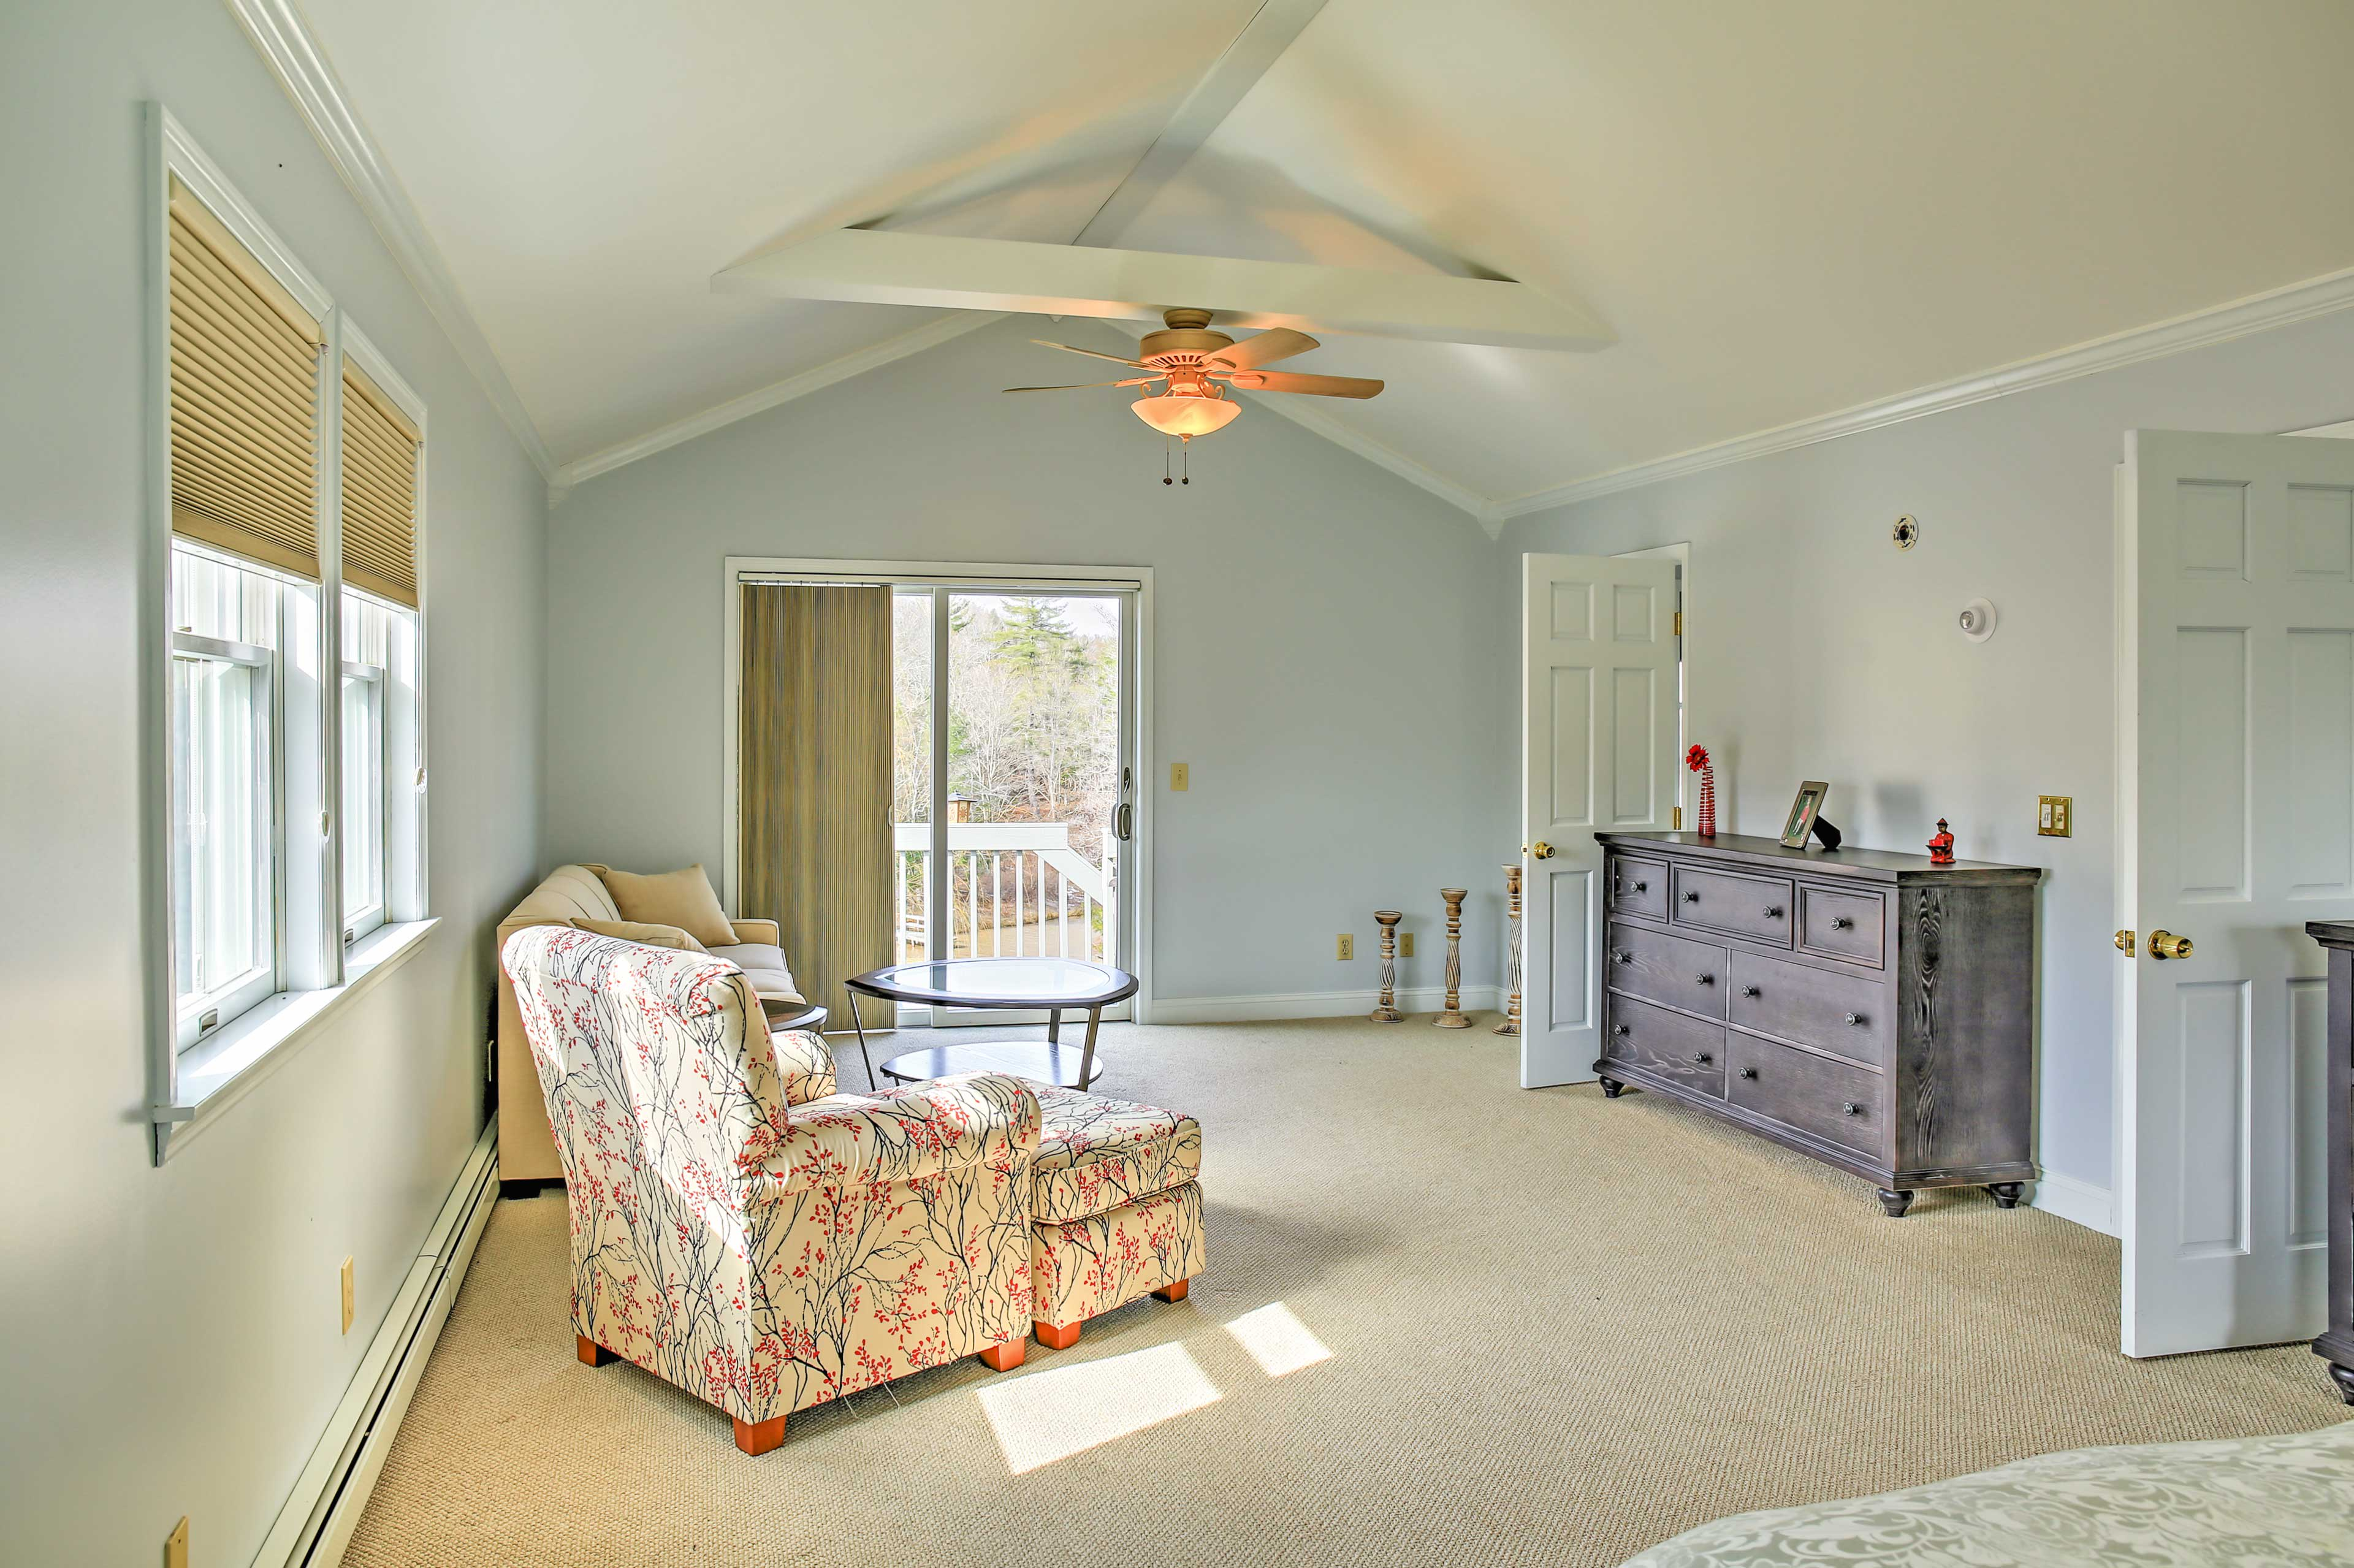 The master includes a queen bed and a queen-sized sleeper sofa.